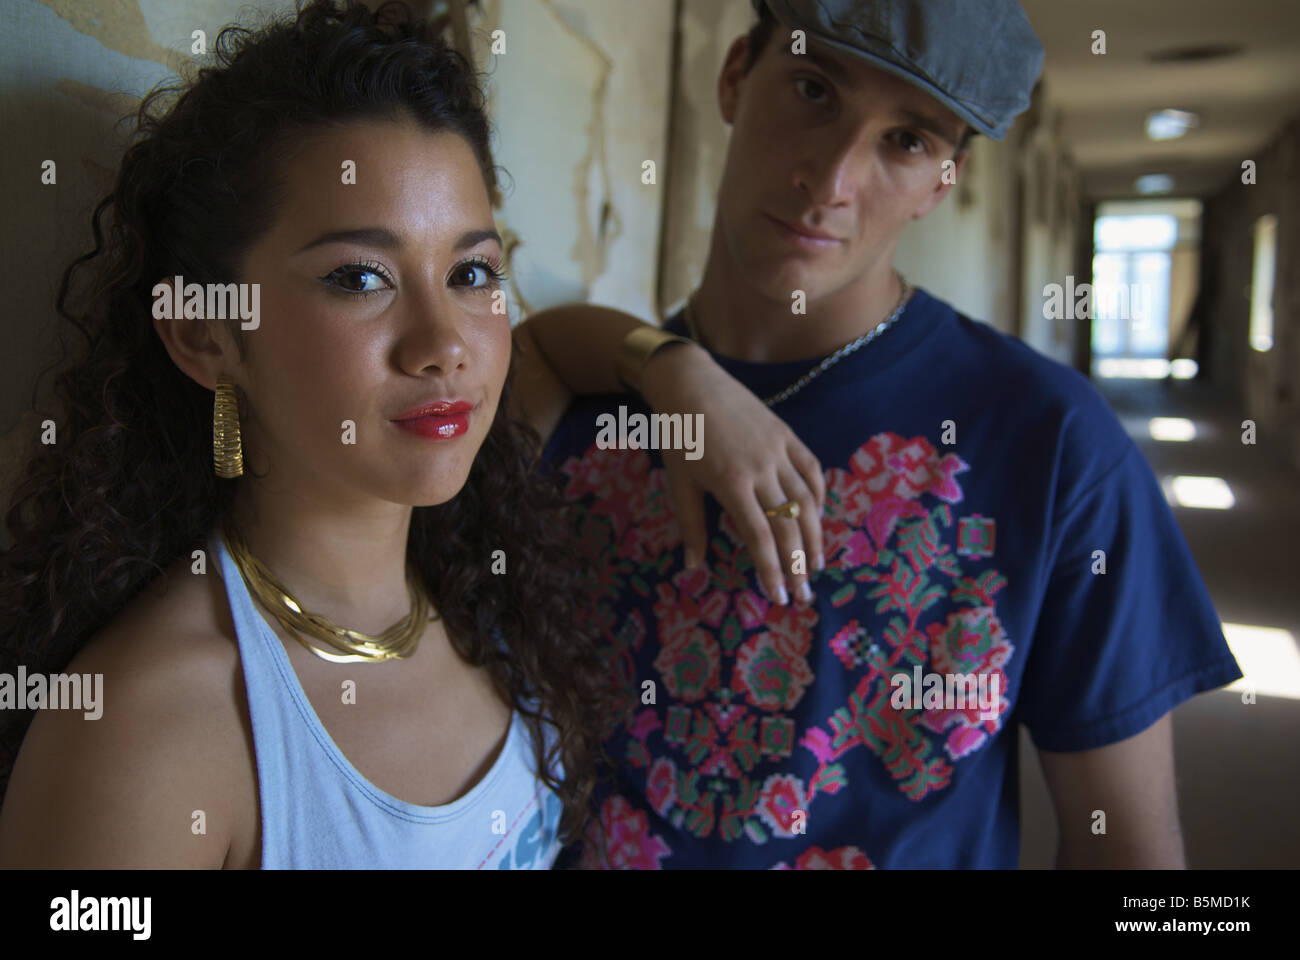 A young man and teenage girl in a hallway - Stock Image